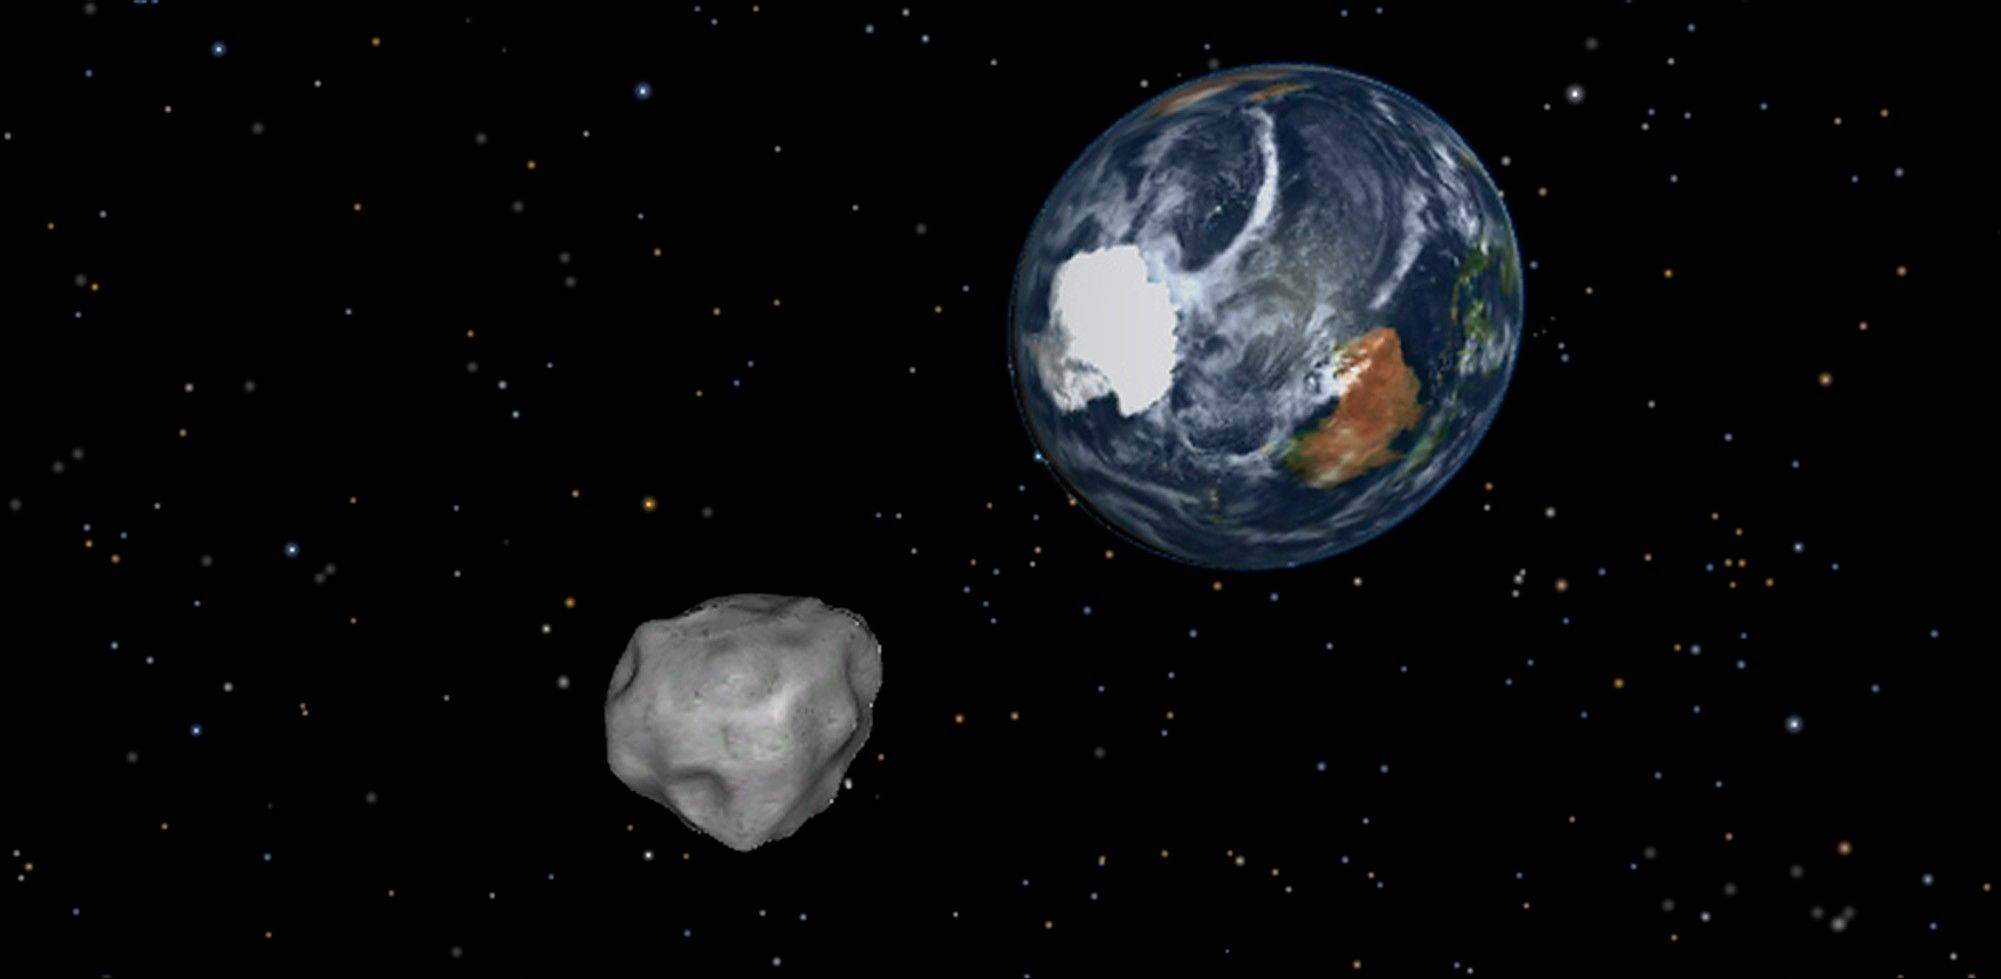 This image provided by NASA/JPL-Caltech shows a simulation of asteroid 2012 DA14 approaching from the south as it passes through the Earth-moon system Feb. 15. The 150-foot object will pass within 17,000 miles of the Earth. NASA scientists insist there is absolutely no chance of a collision as it passes.